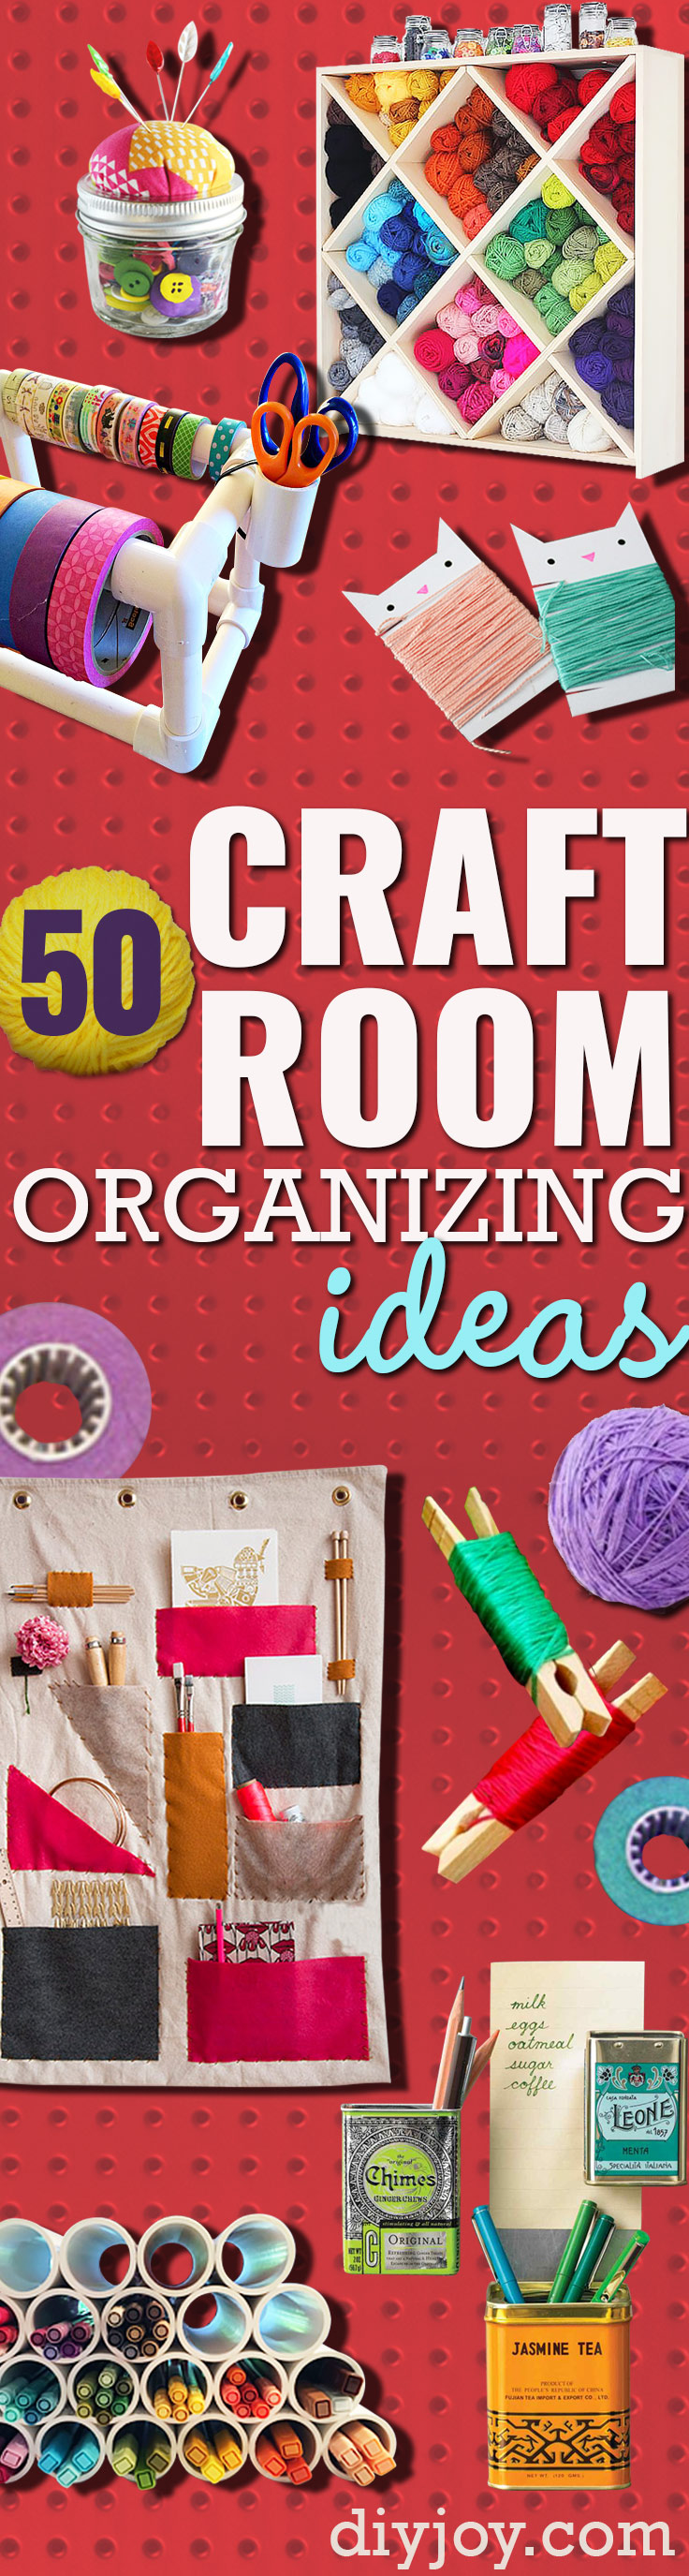 DIY Craft Room Ideas and Craft Room Organization Projects -Cool Ideas for Do It Yourself Craft Storage - fabric, paper, pens, creative tools, crafts supplies